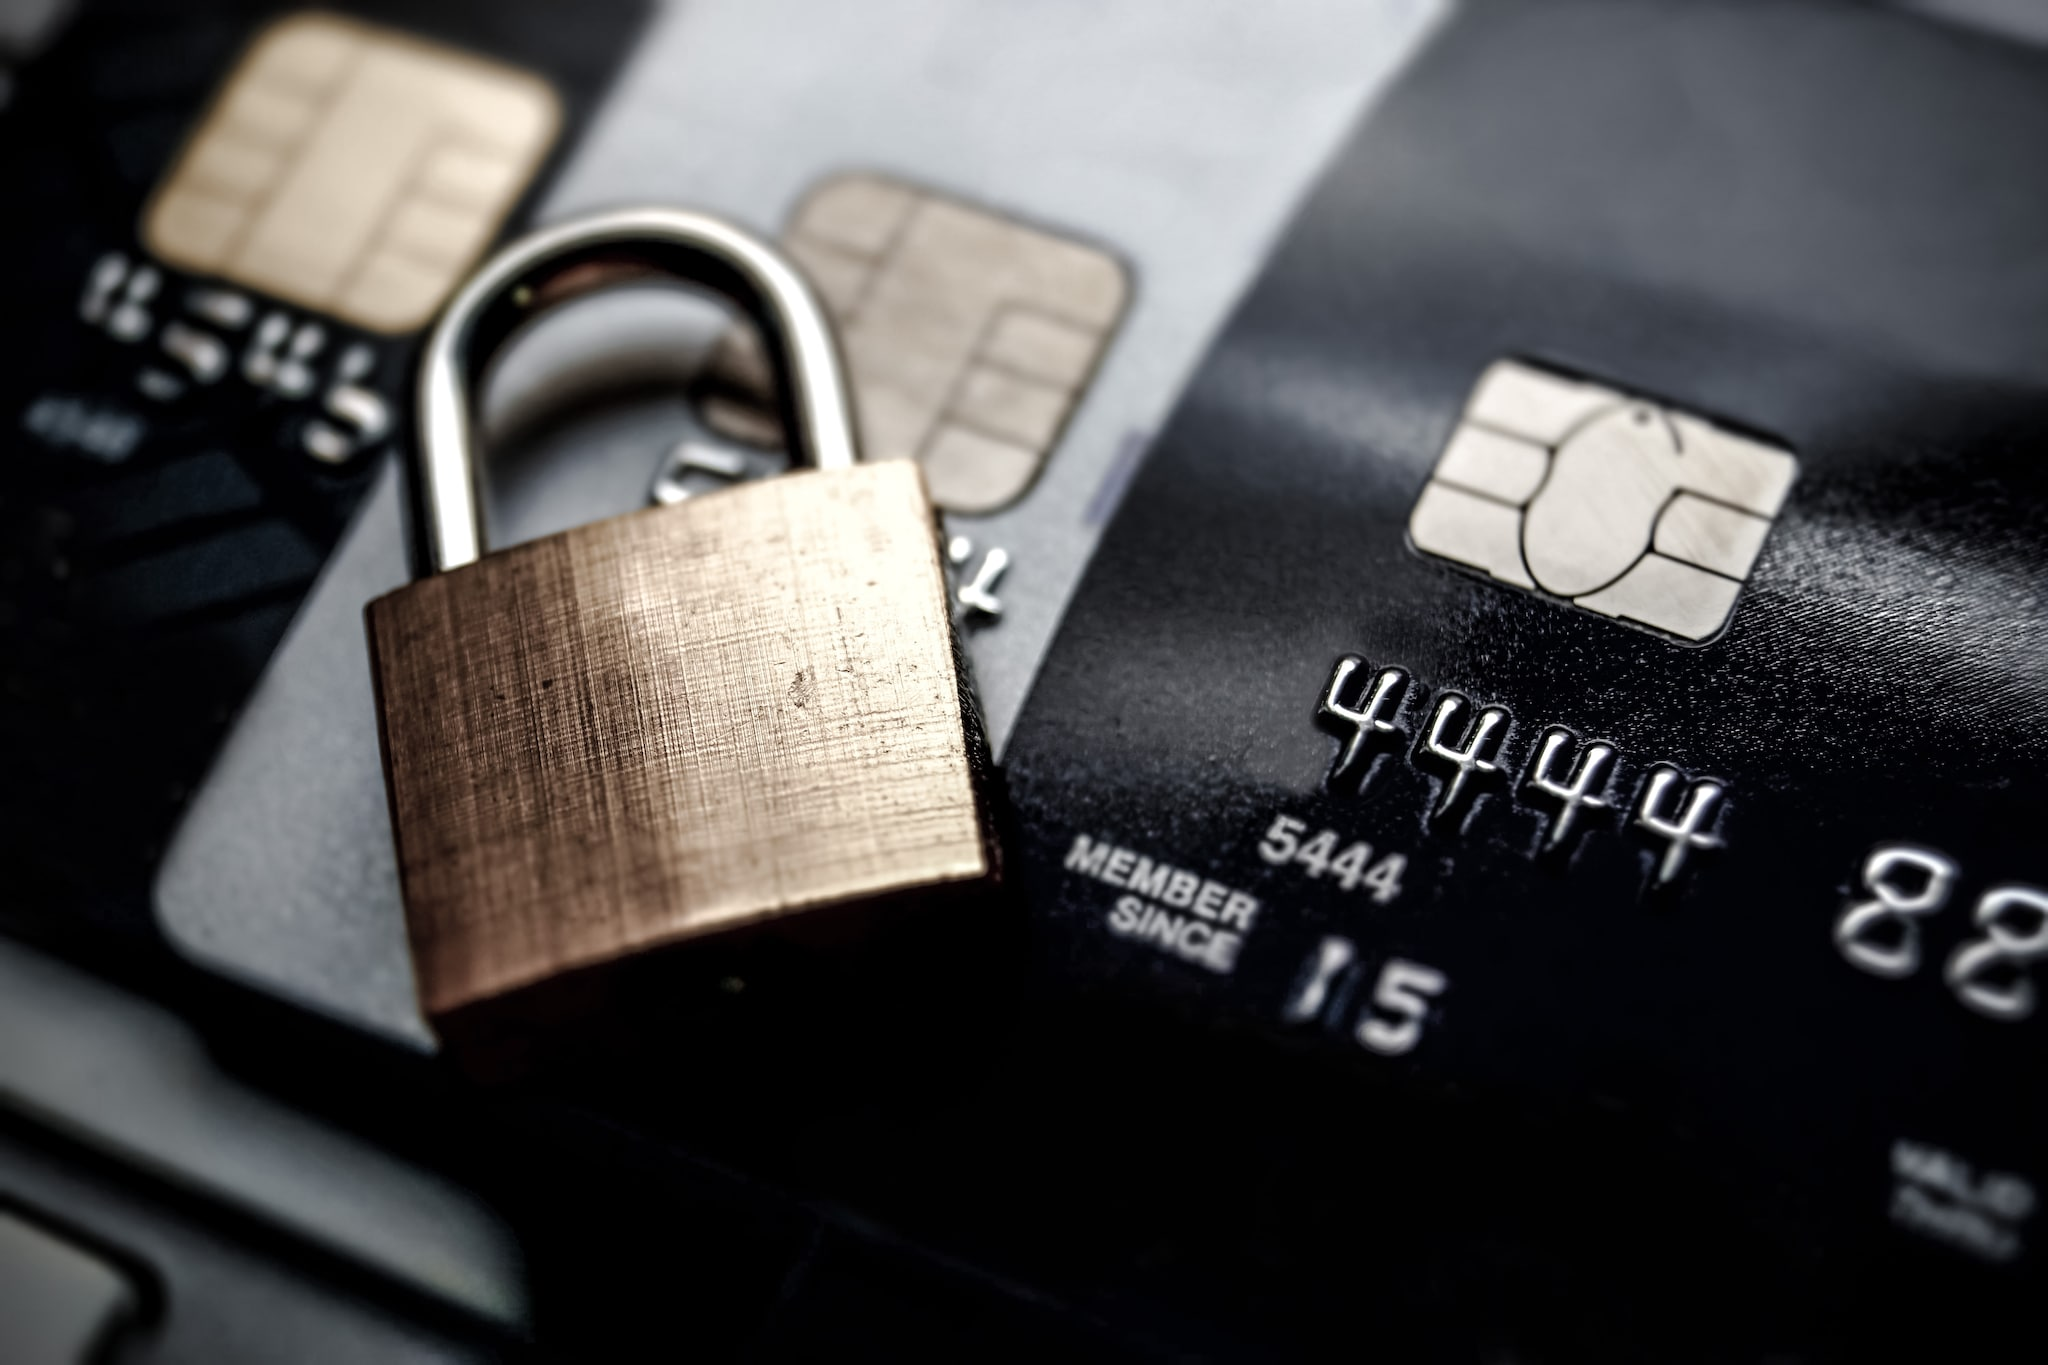 padlock over credit cards